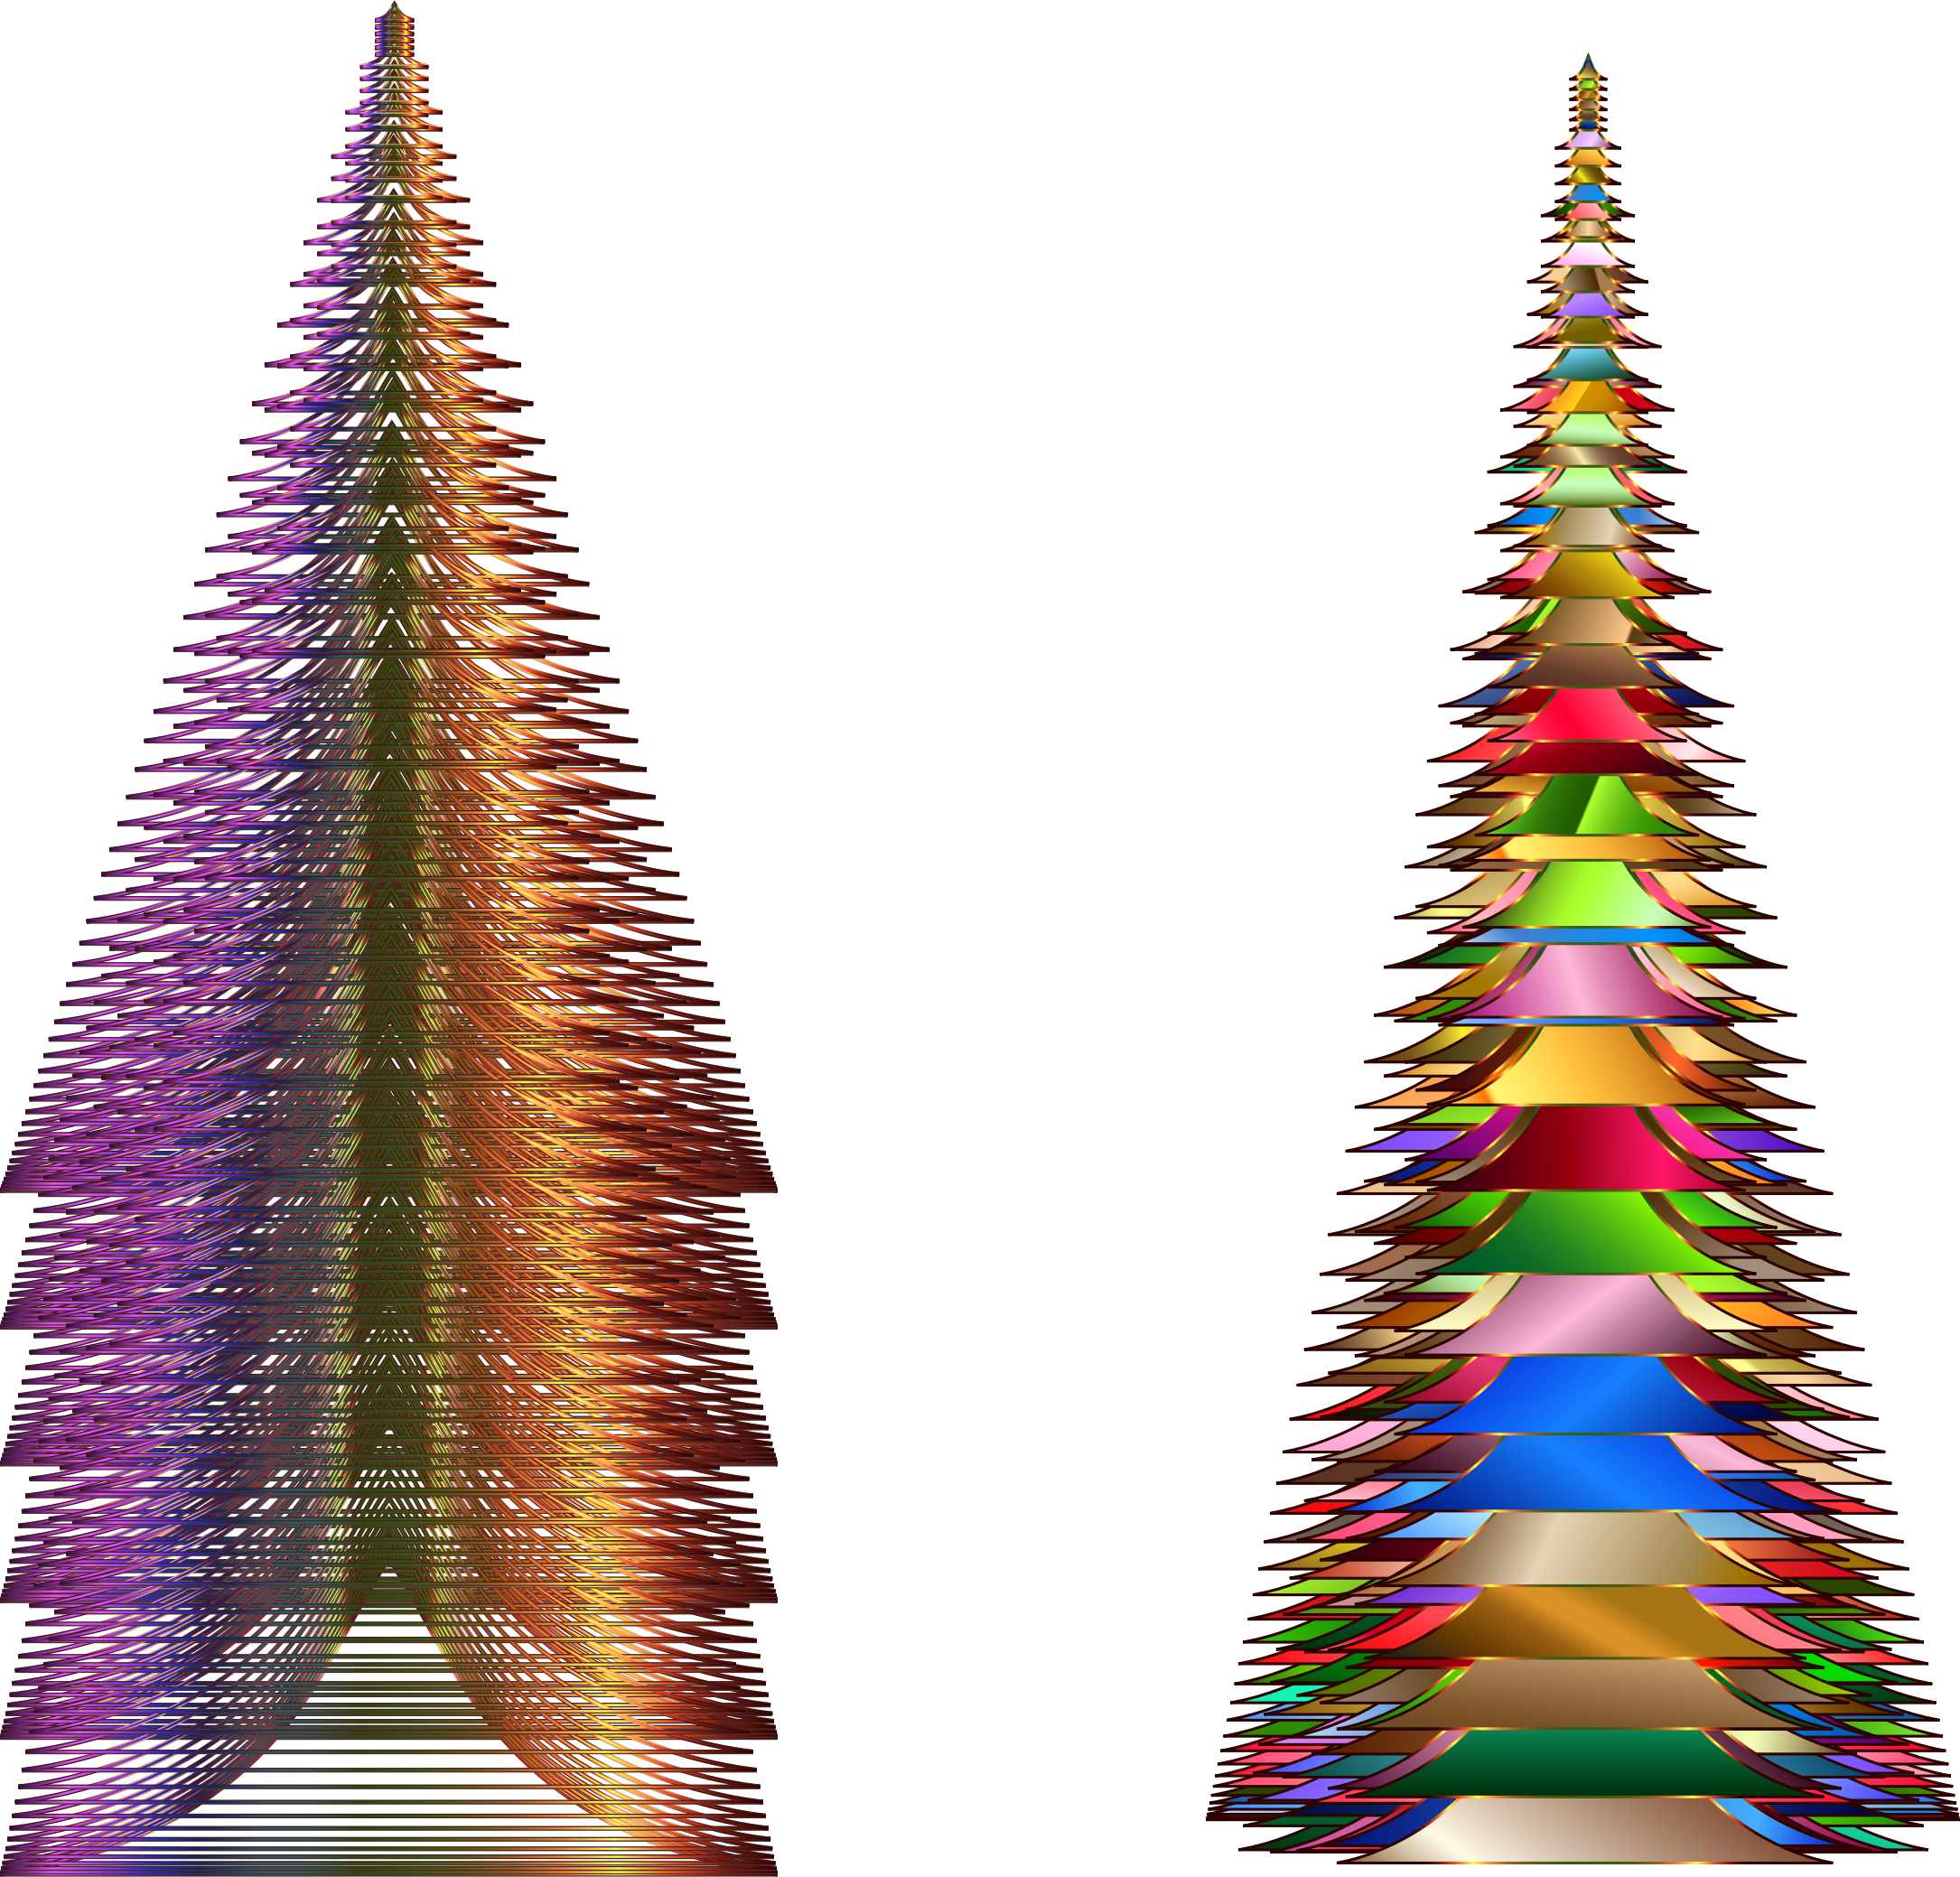 Prismatic Christmas Trees by GDJ